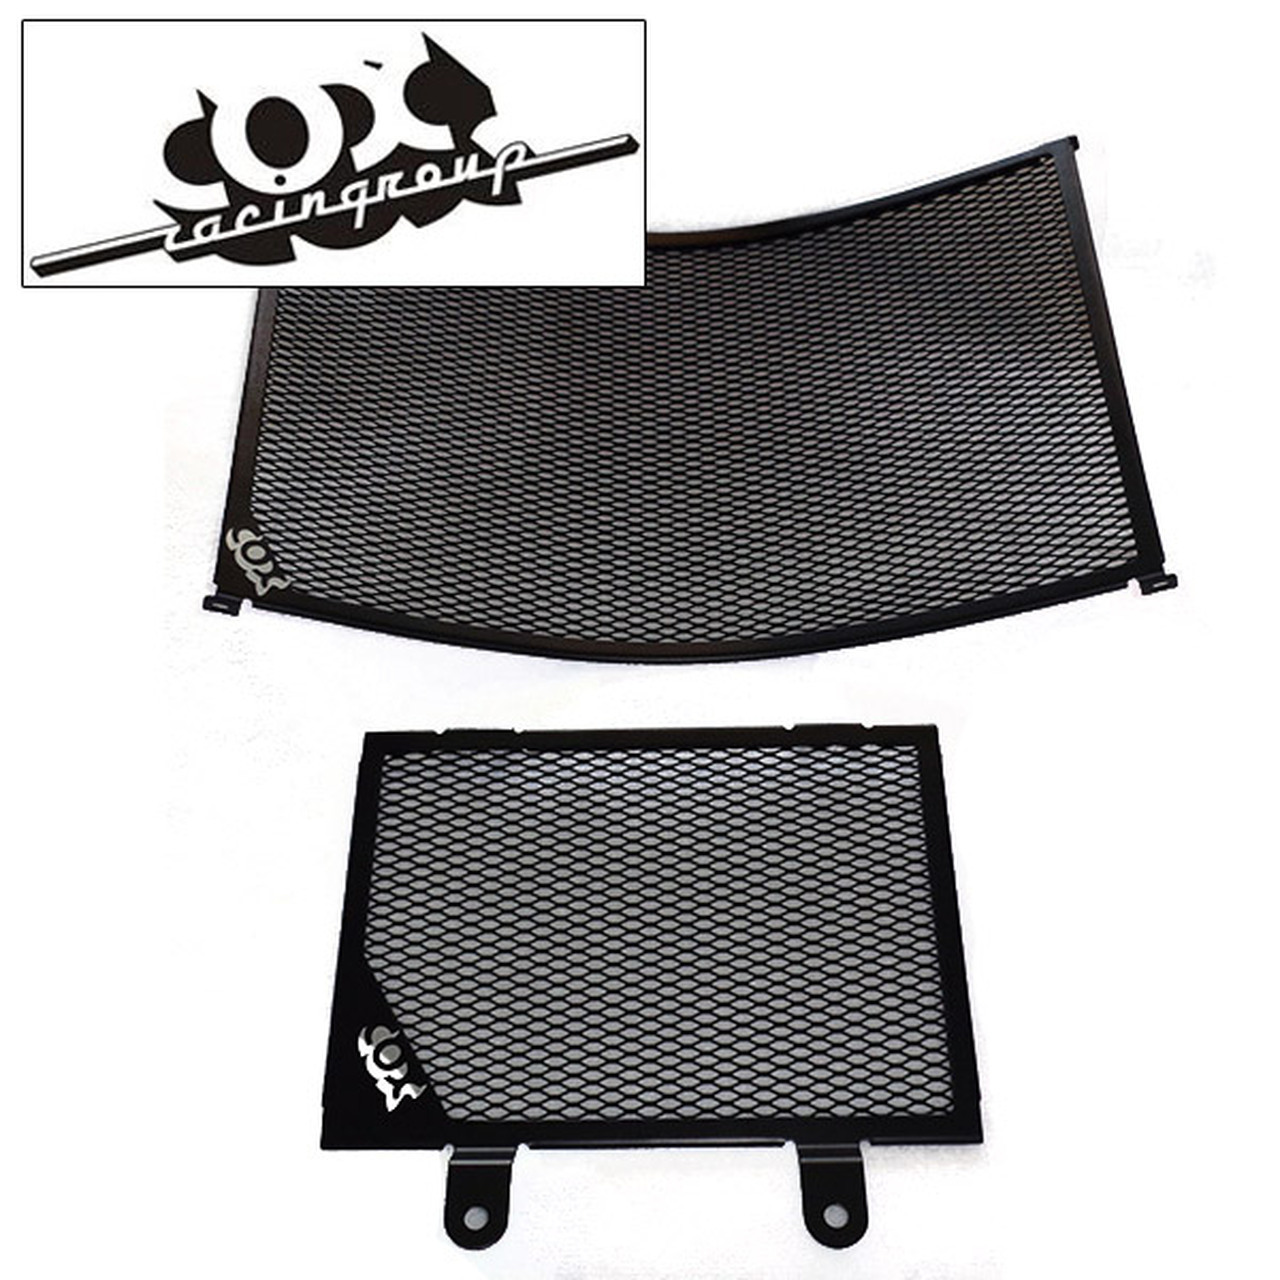 Aluminum Radiator Guard Covers Oil Cooler Guard For Yamaha YZF R1 R1M 2015-2017